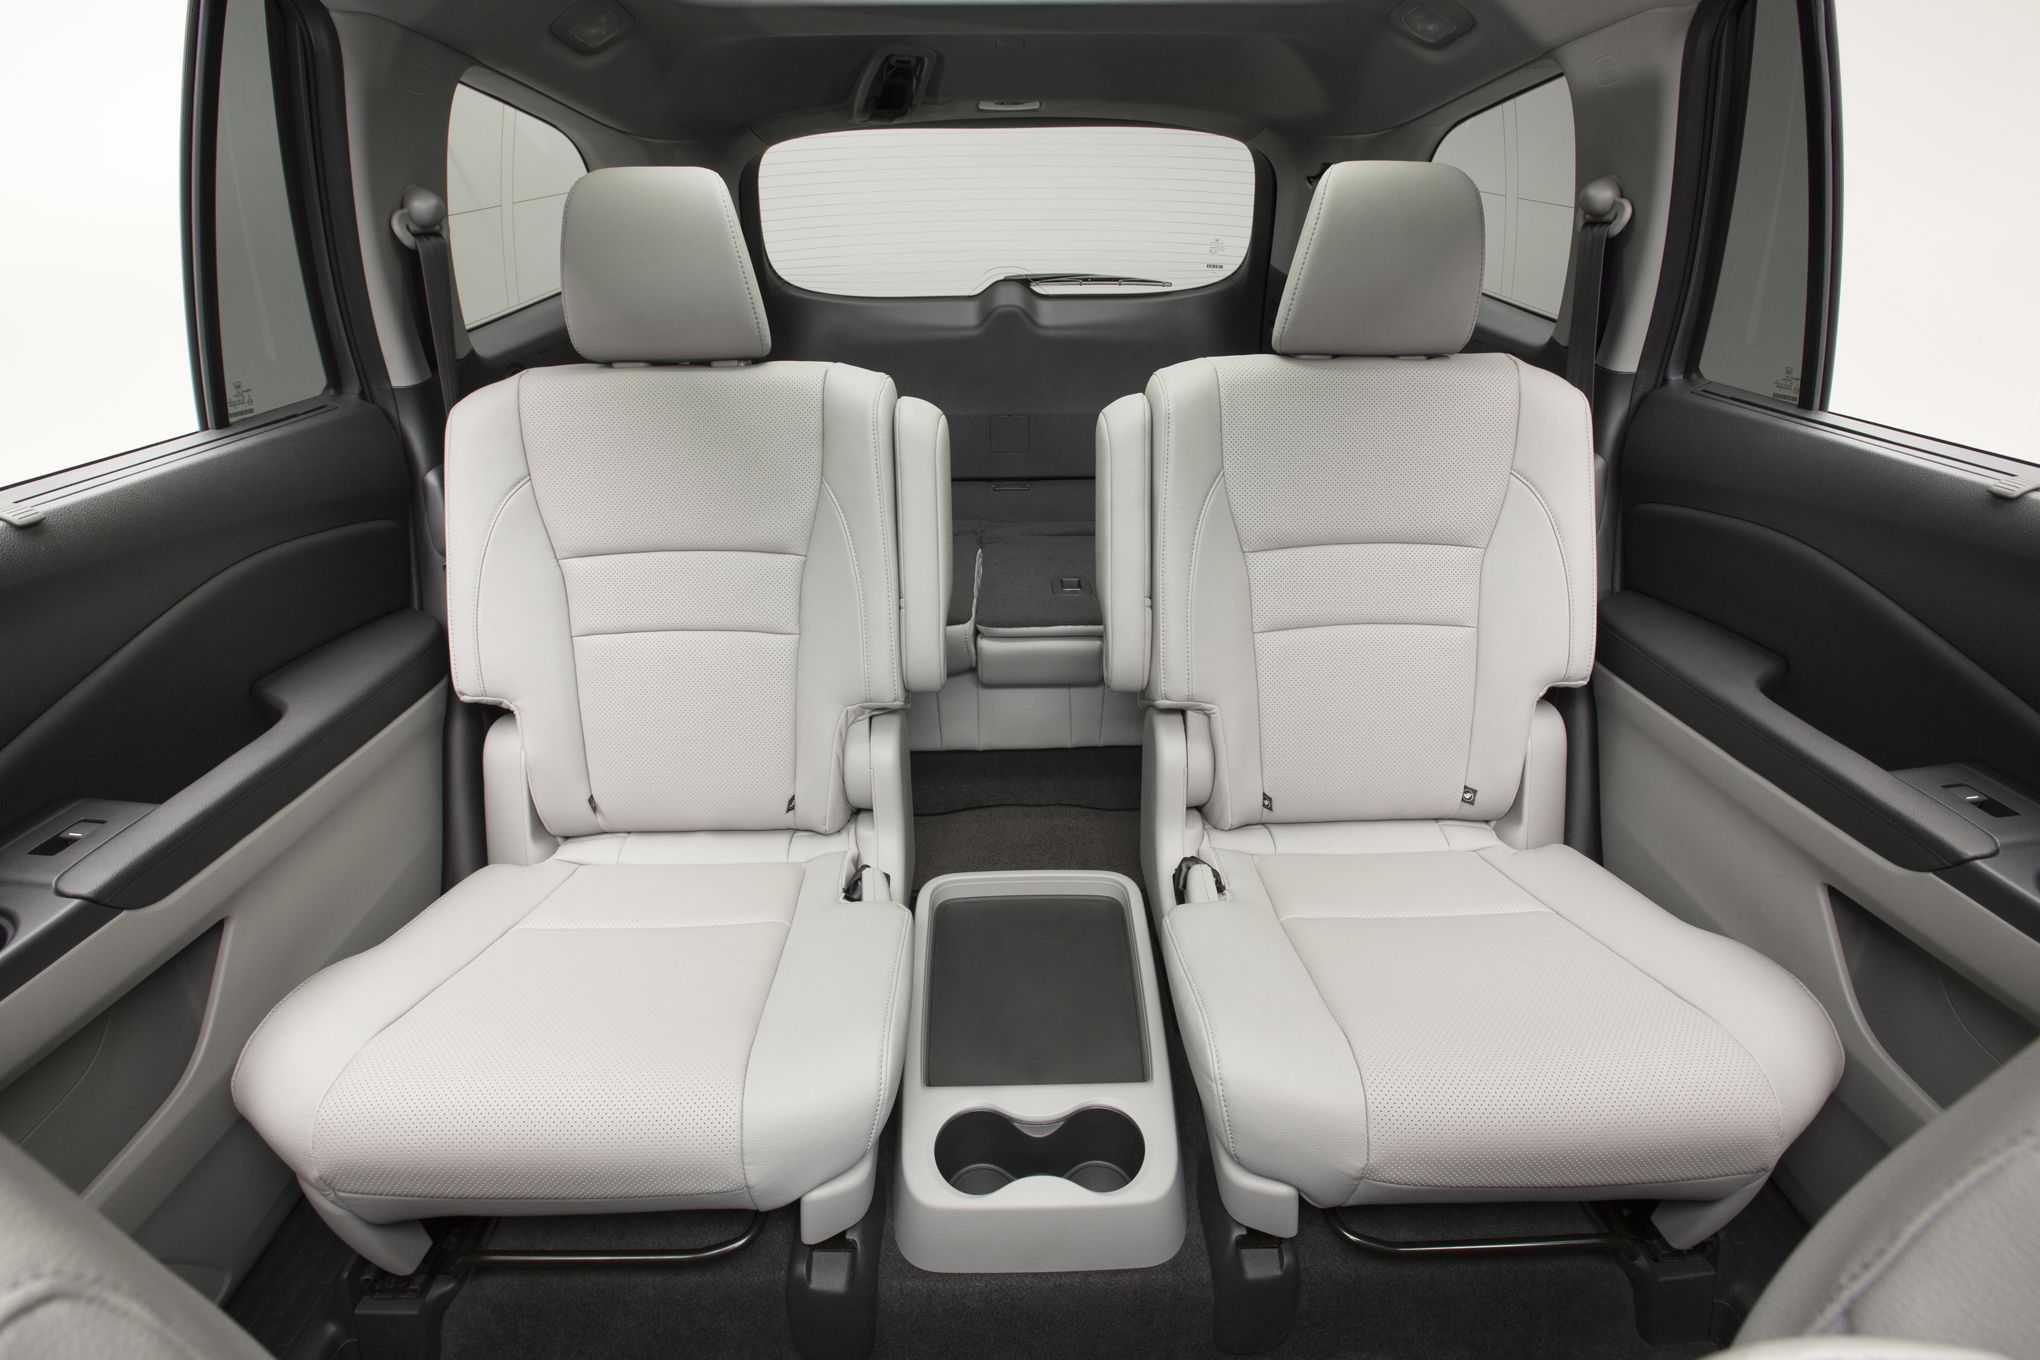 2016 Honda Pilot Captain s chairs available in 2nd row Cool